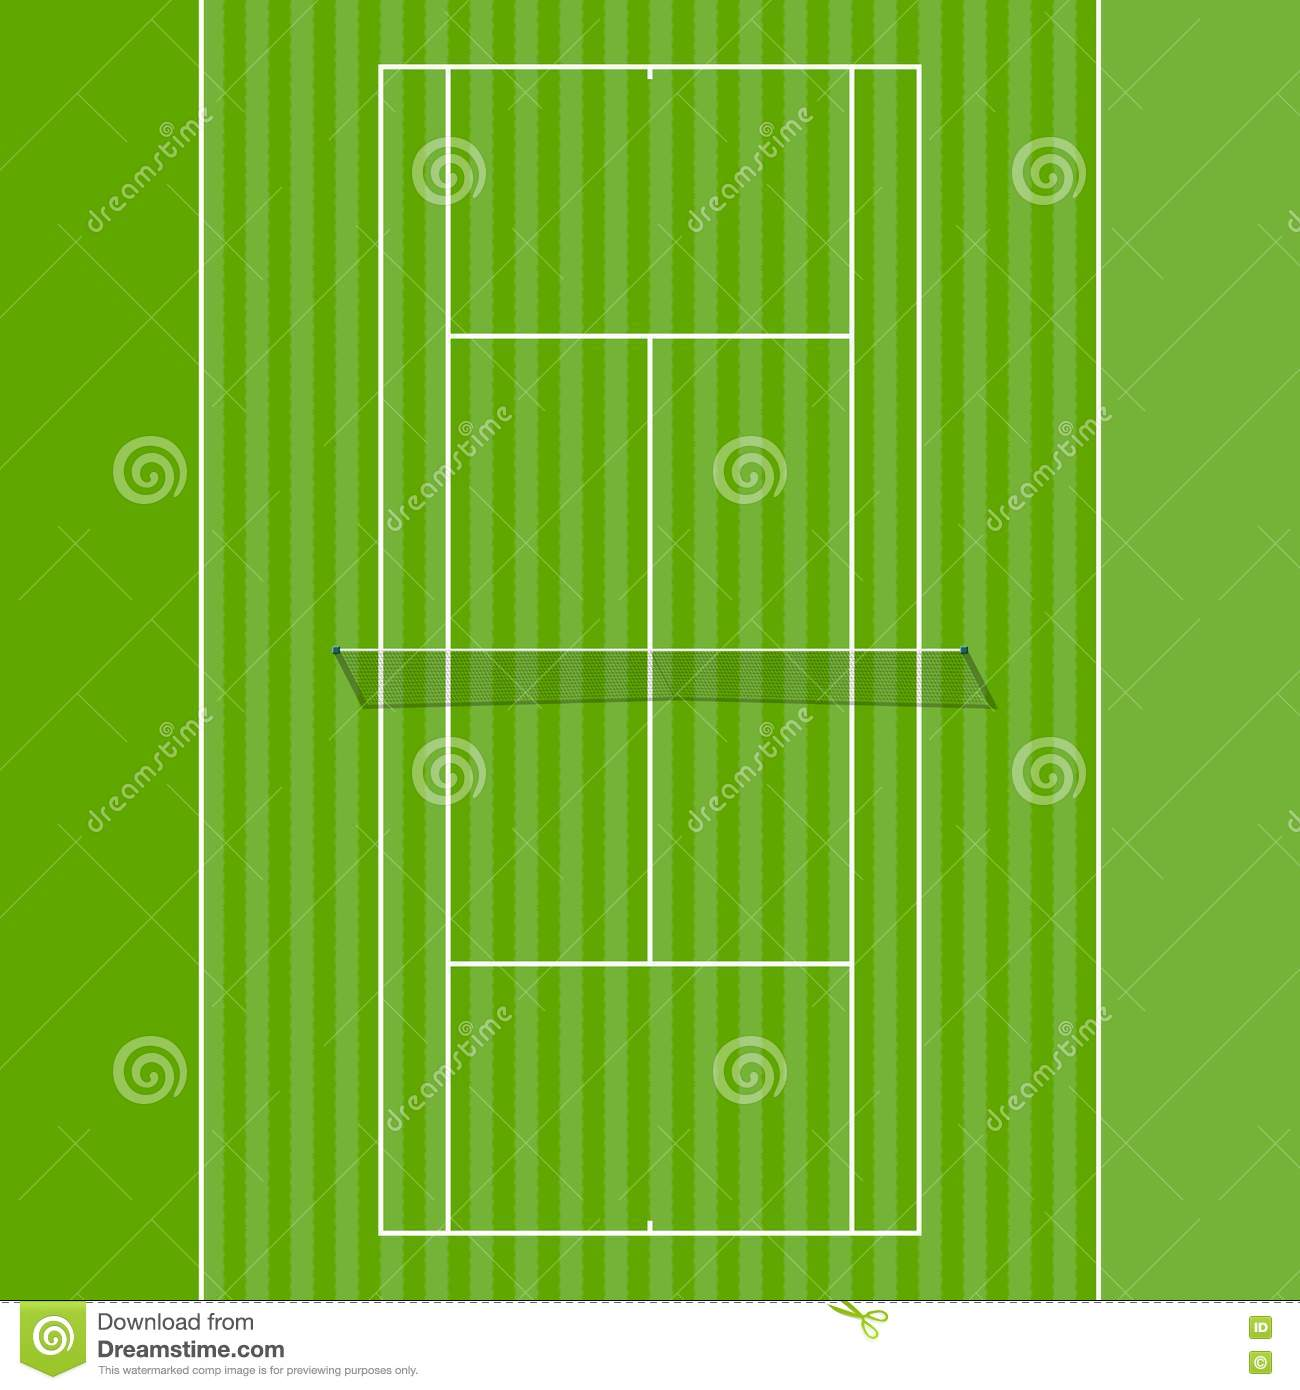 Grass Court Stock Vector Illustration Of Outdoor Line